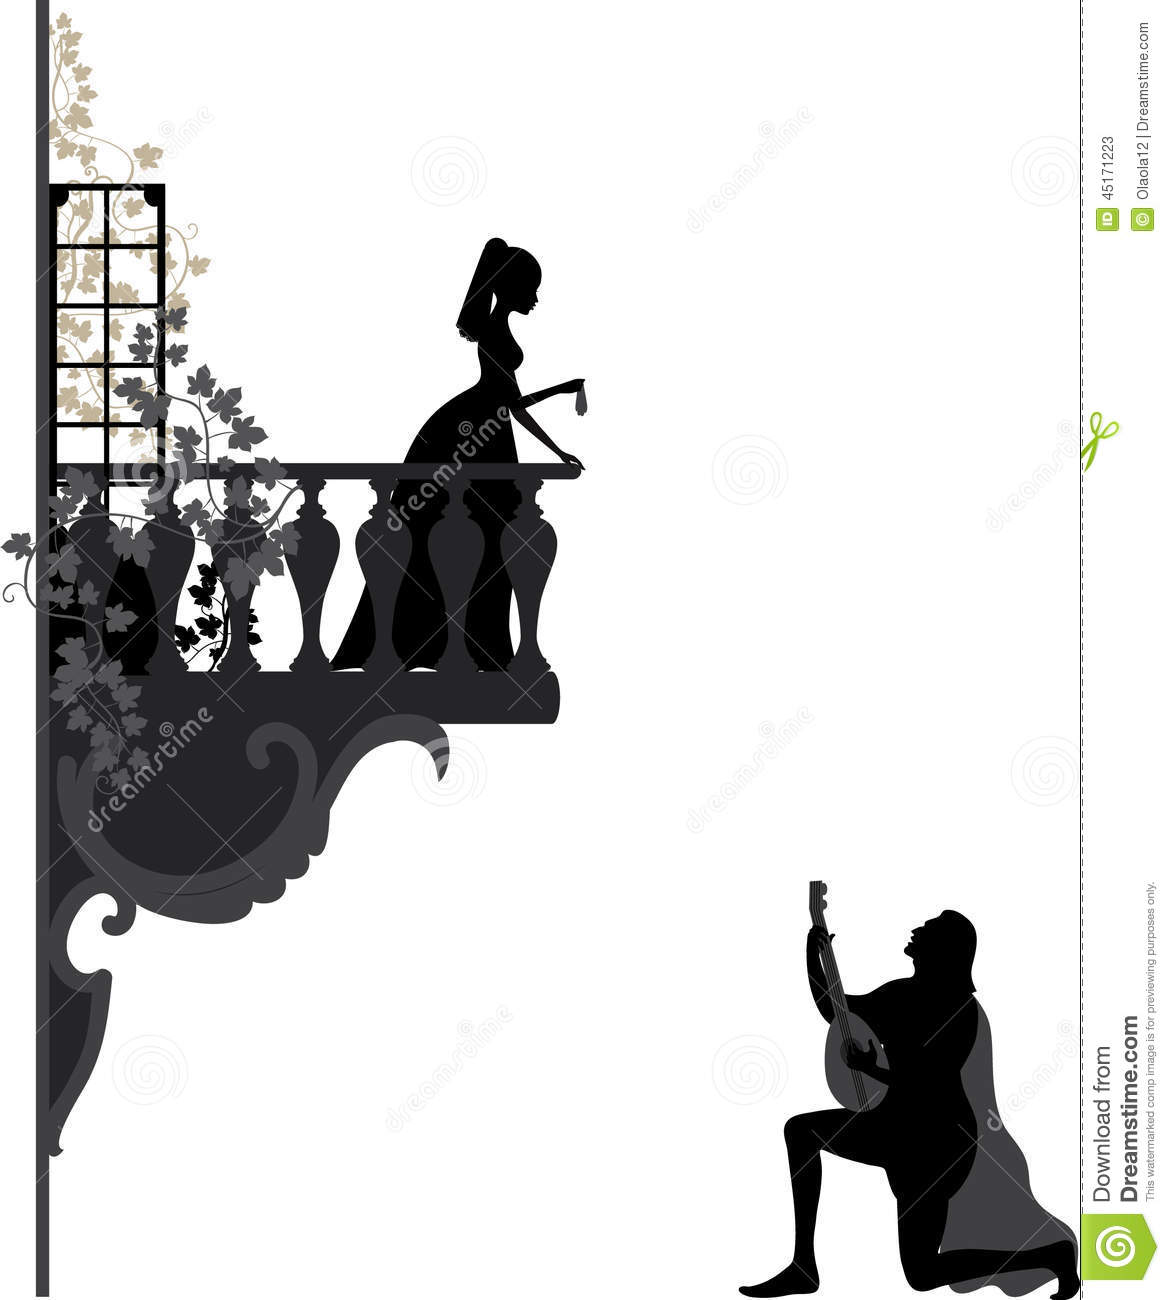 Romeo and juliet clipart - bbcpersian7 collections.